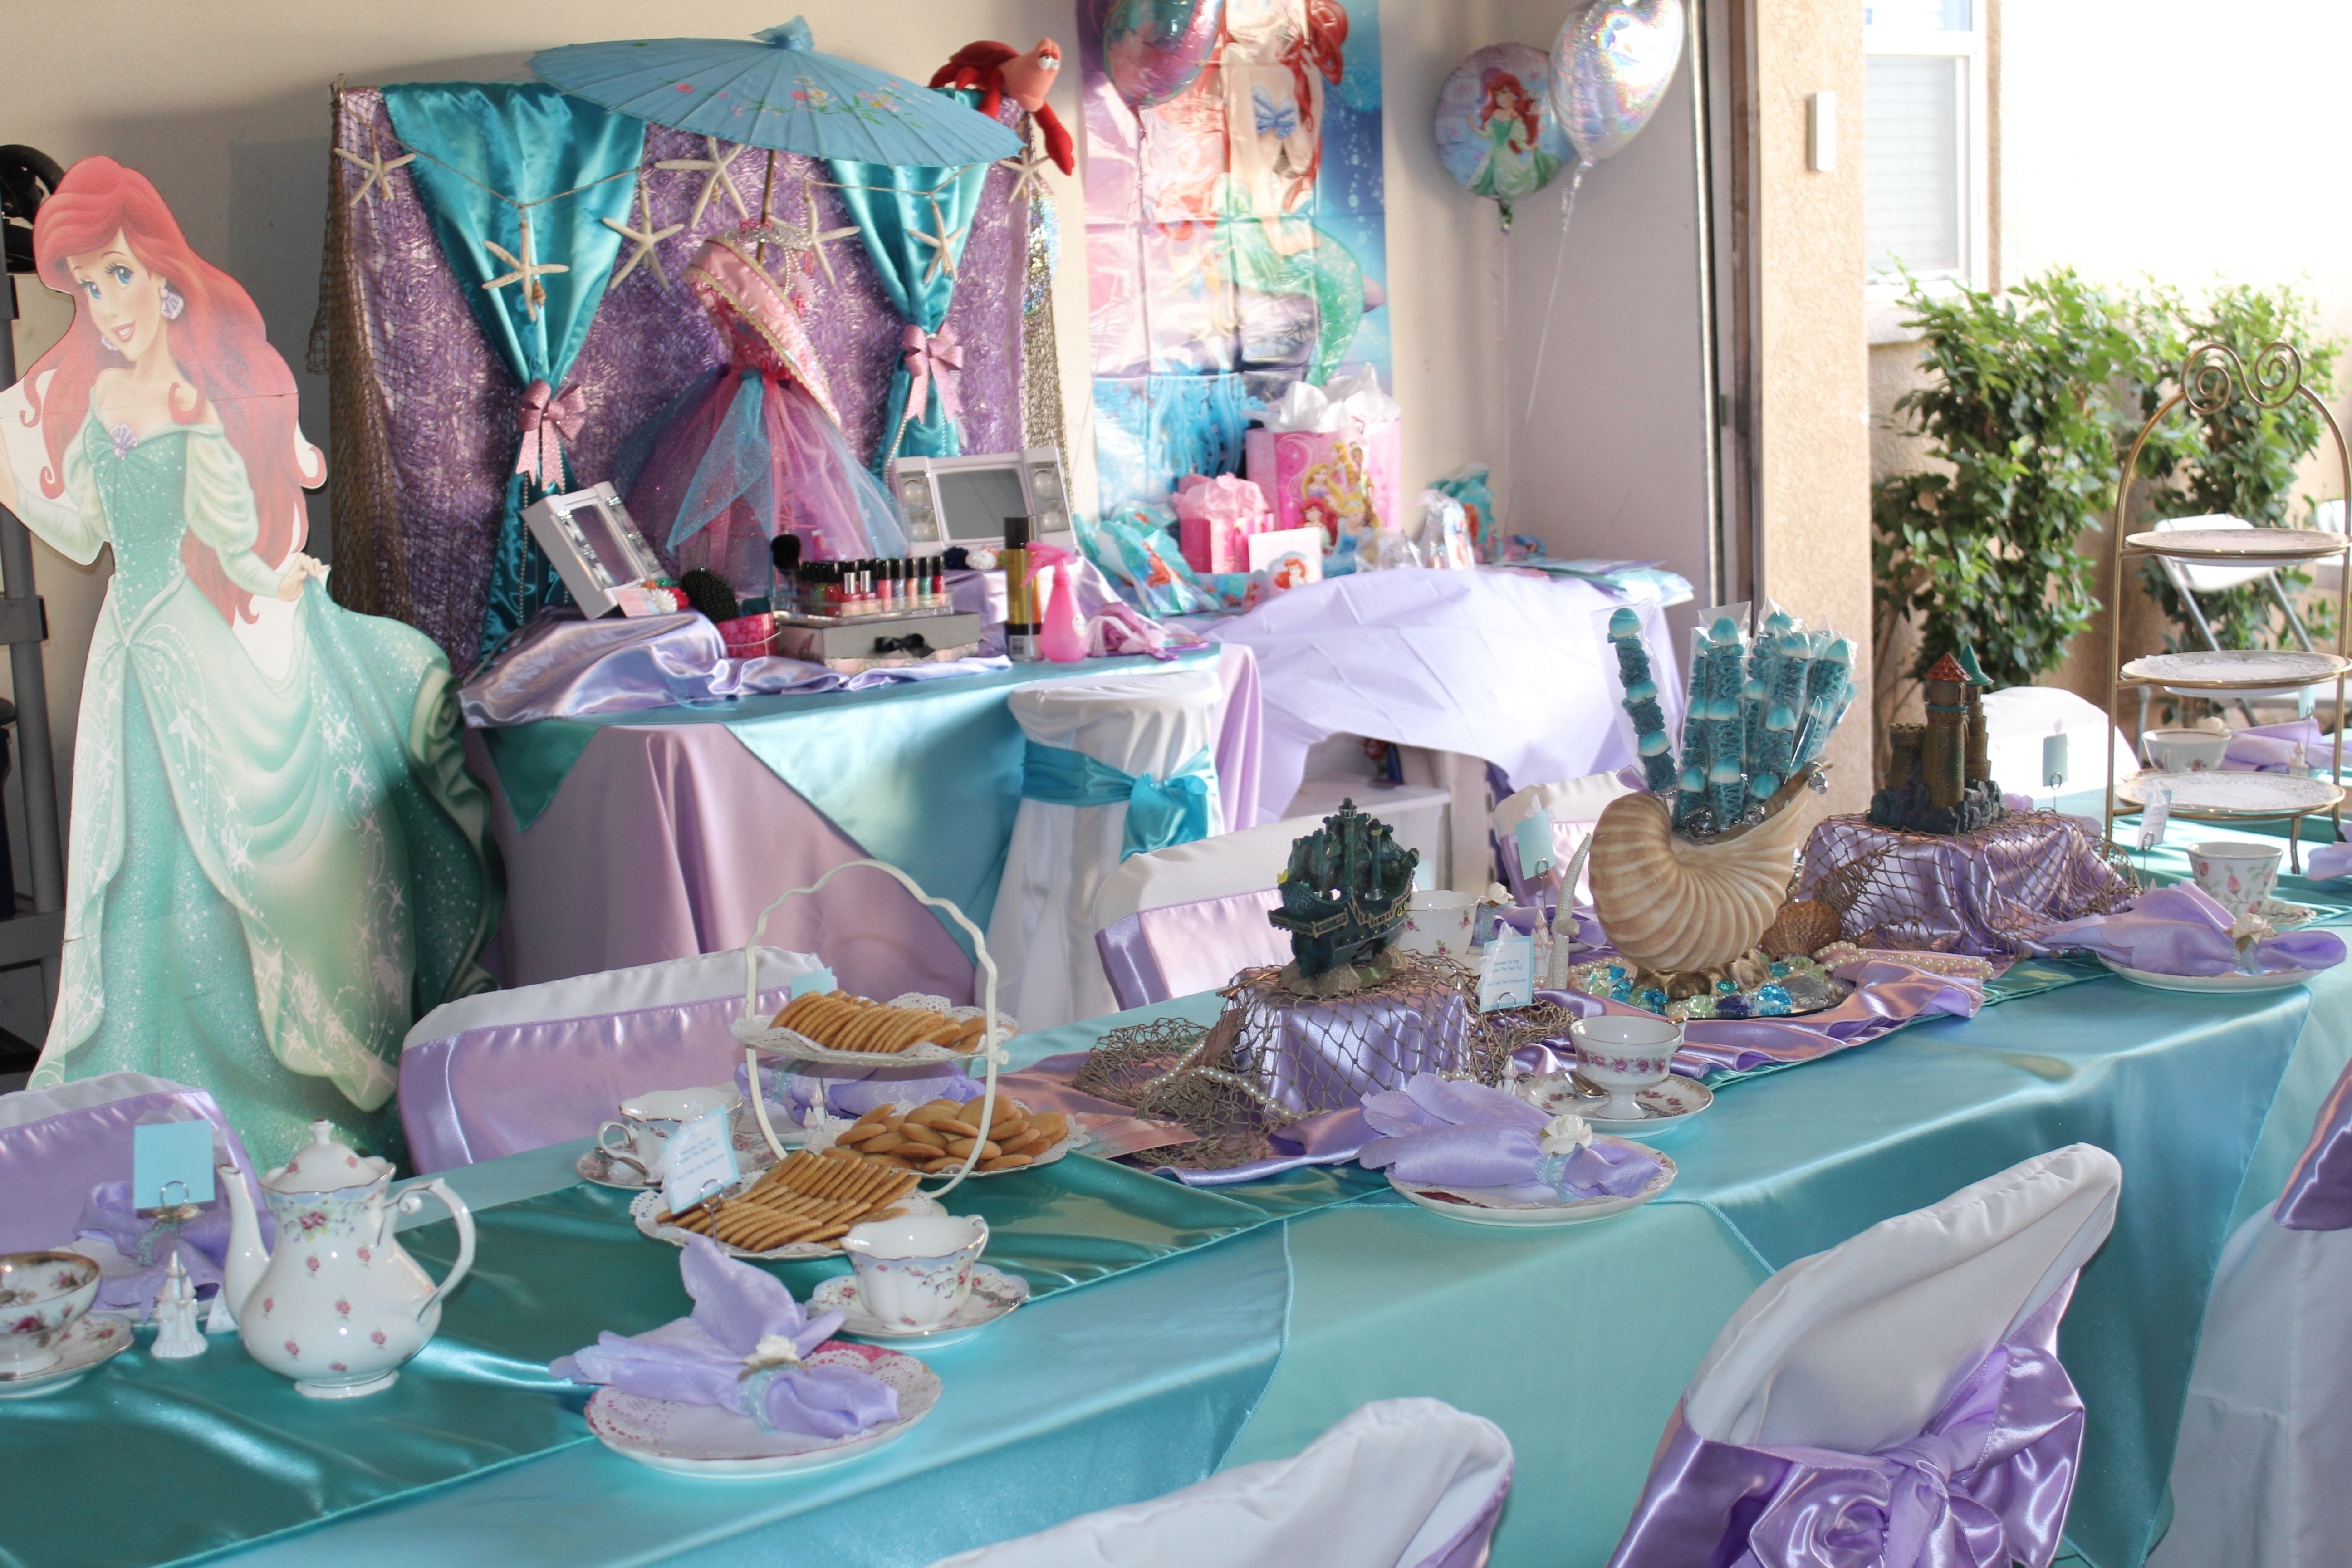 Tea Table Set up and Glamour Session Set up in Little Mermaid Theme ...